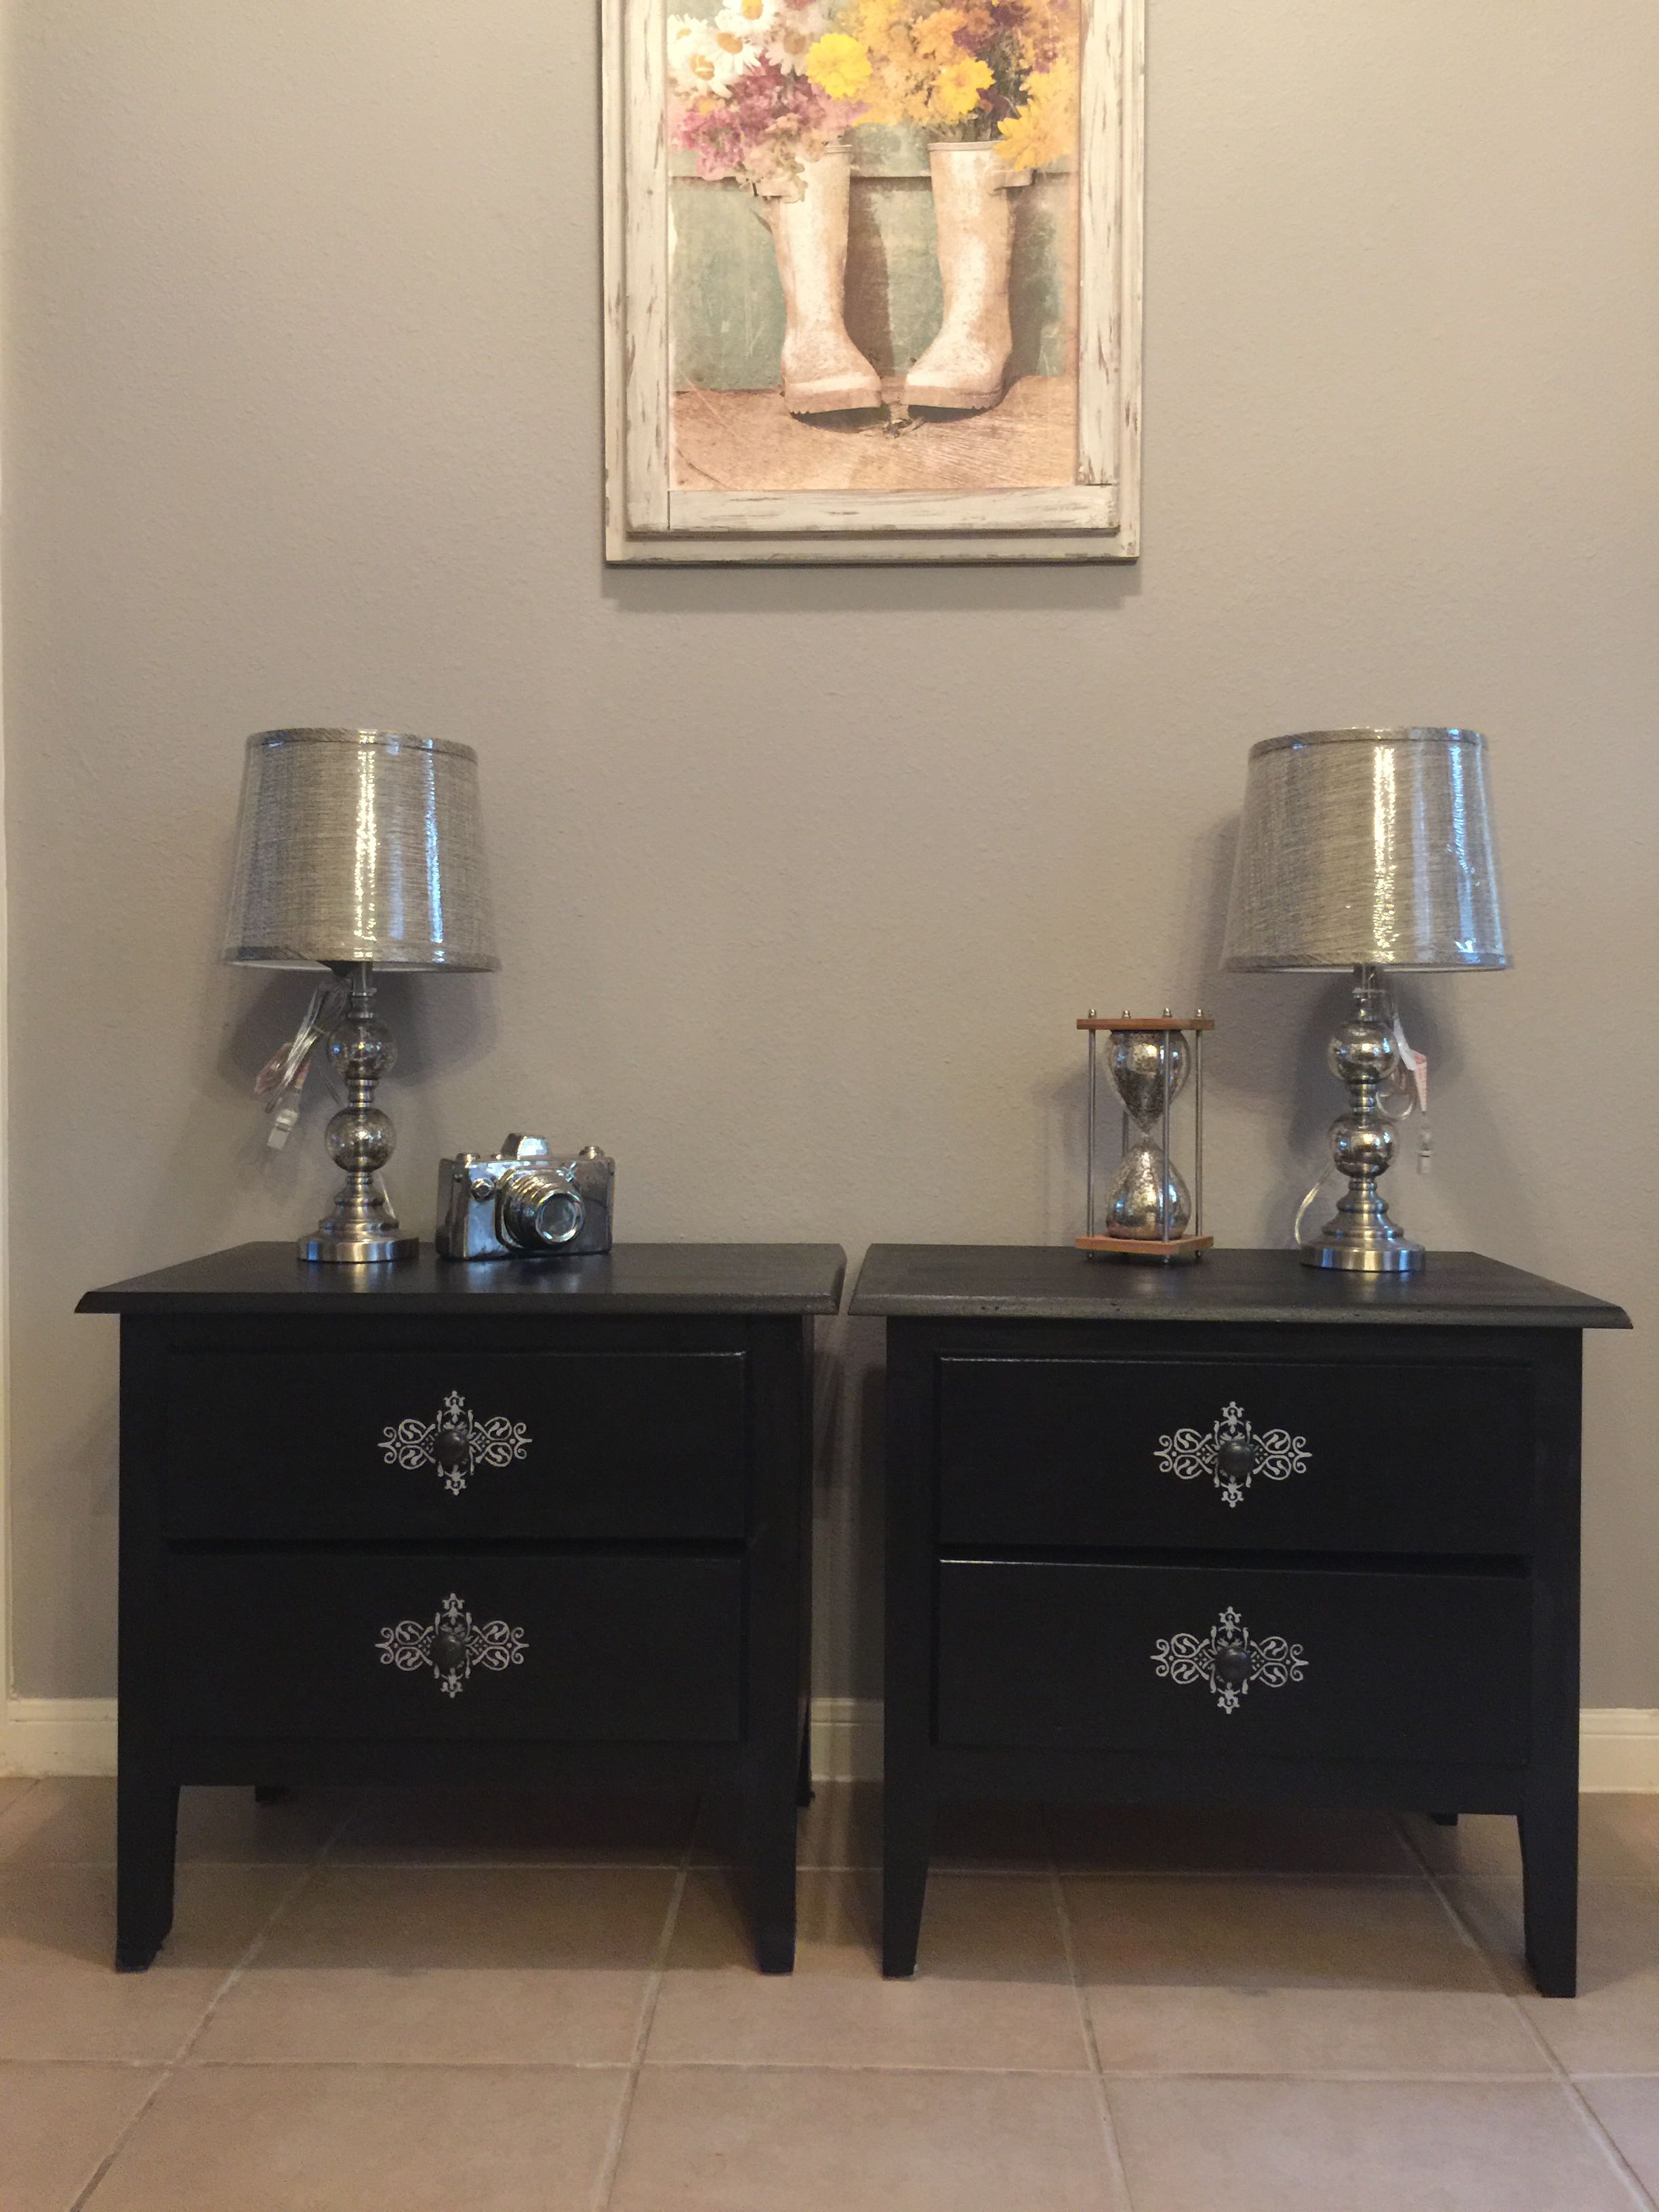 Refinished in black pair of nightstands